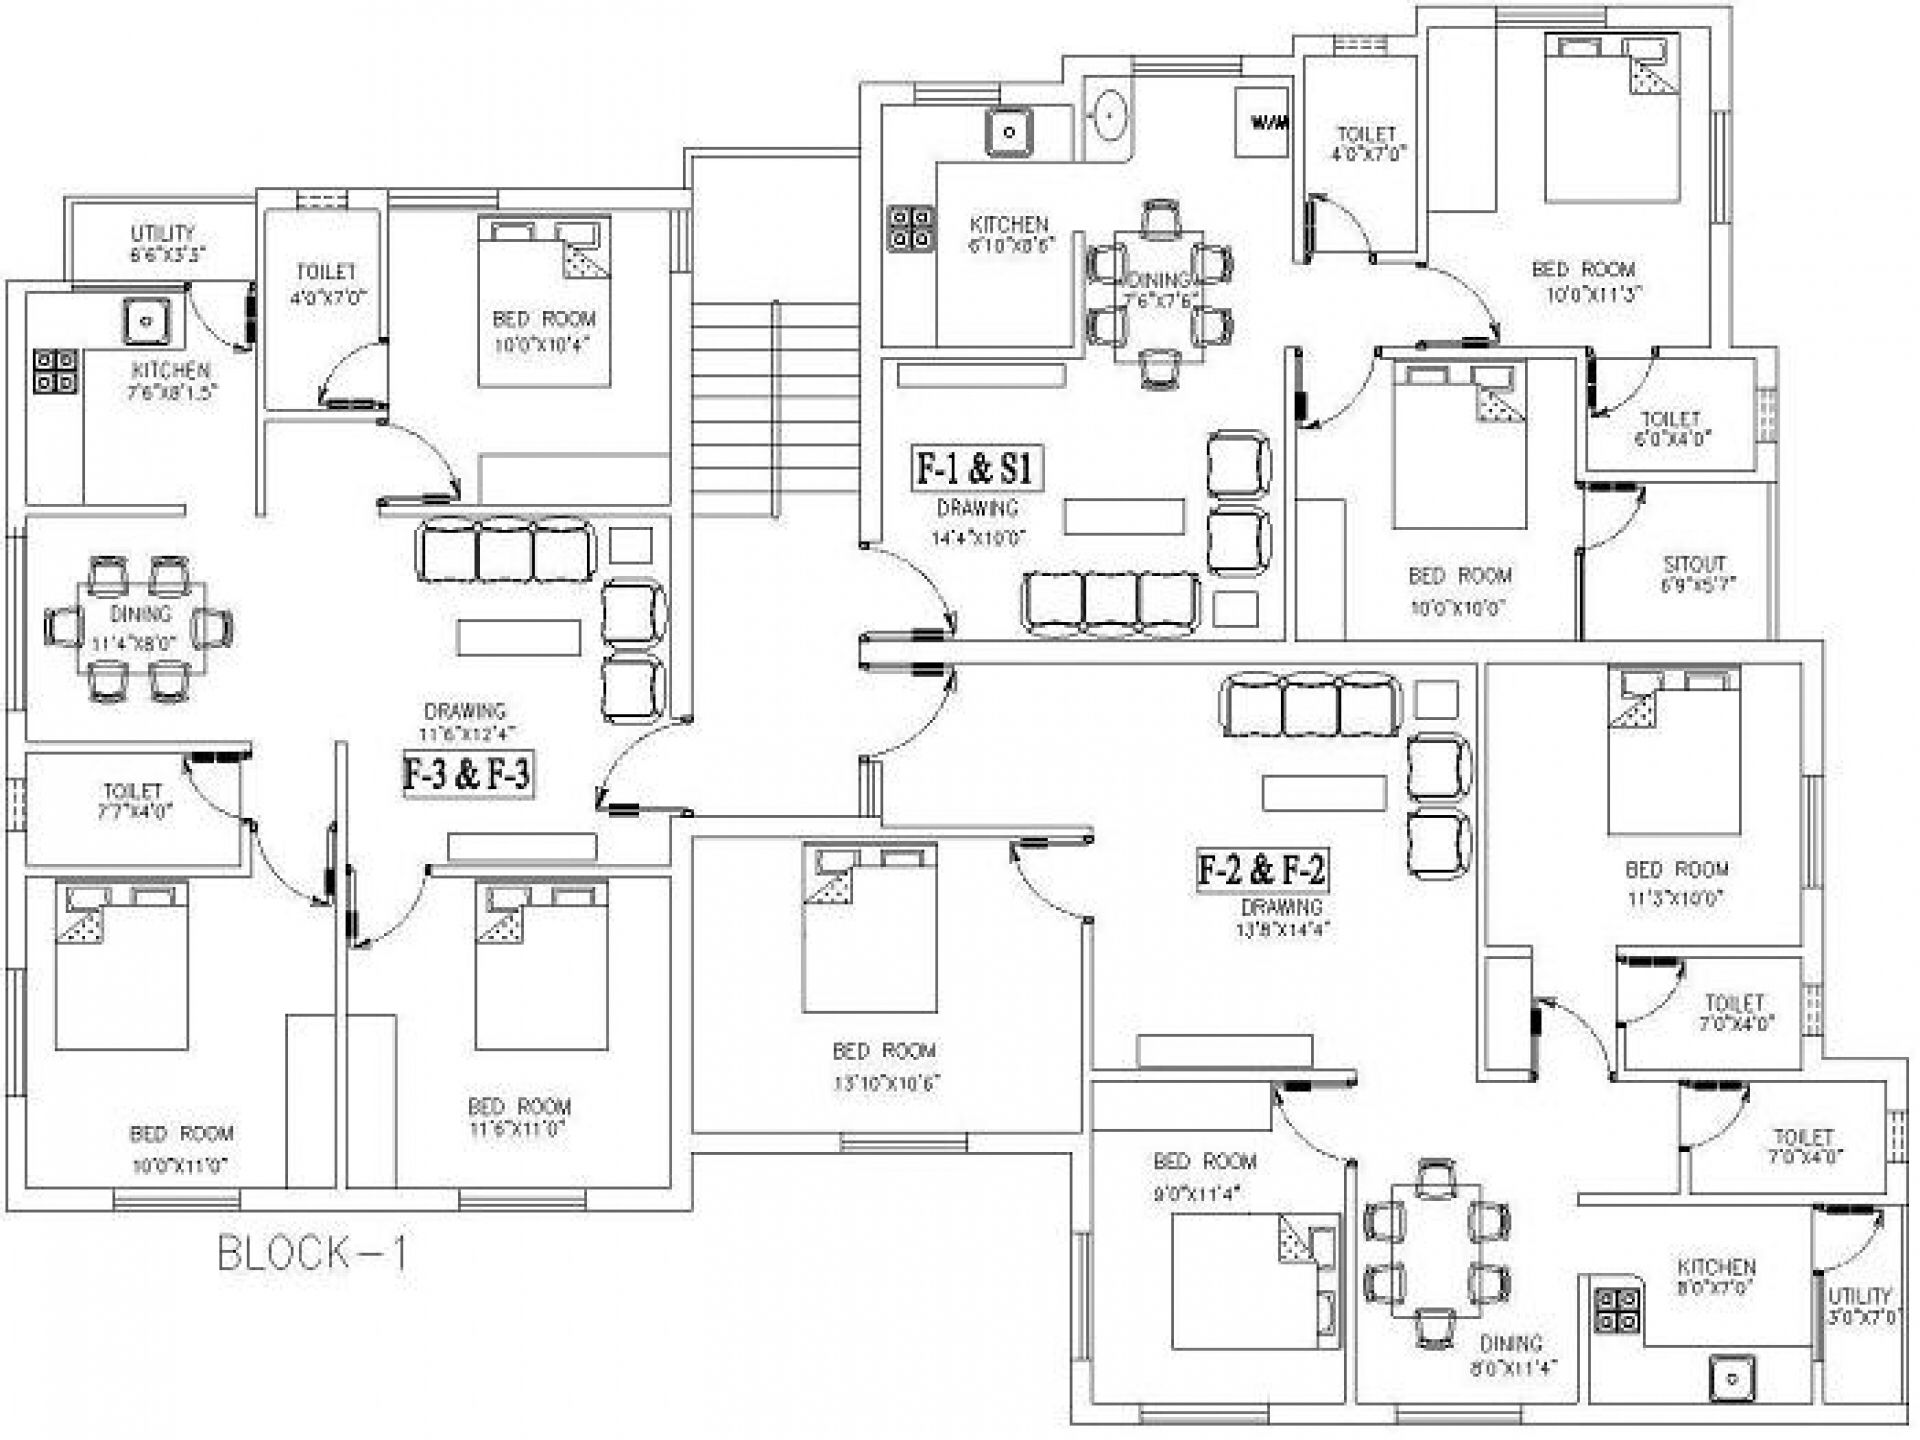 Image From Http Decozt Com Wp Content Uploads 2014 11 Besf Of Ideas Simple Luxury Contemporary Ranch Drawing House Plans Simple Floor Plans House Floor Plans